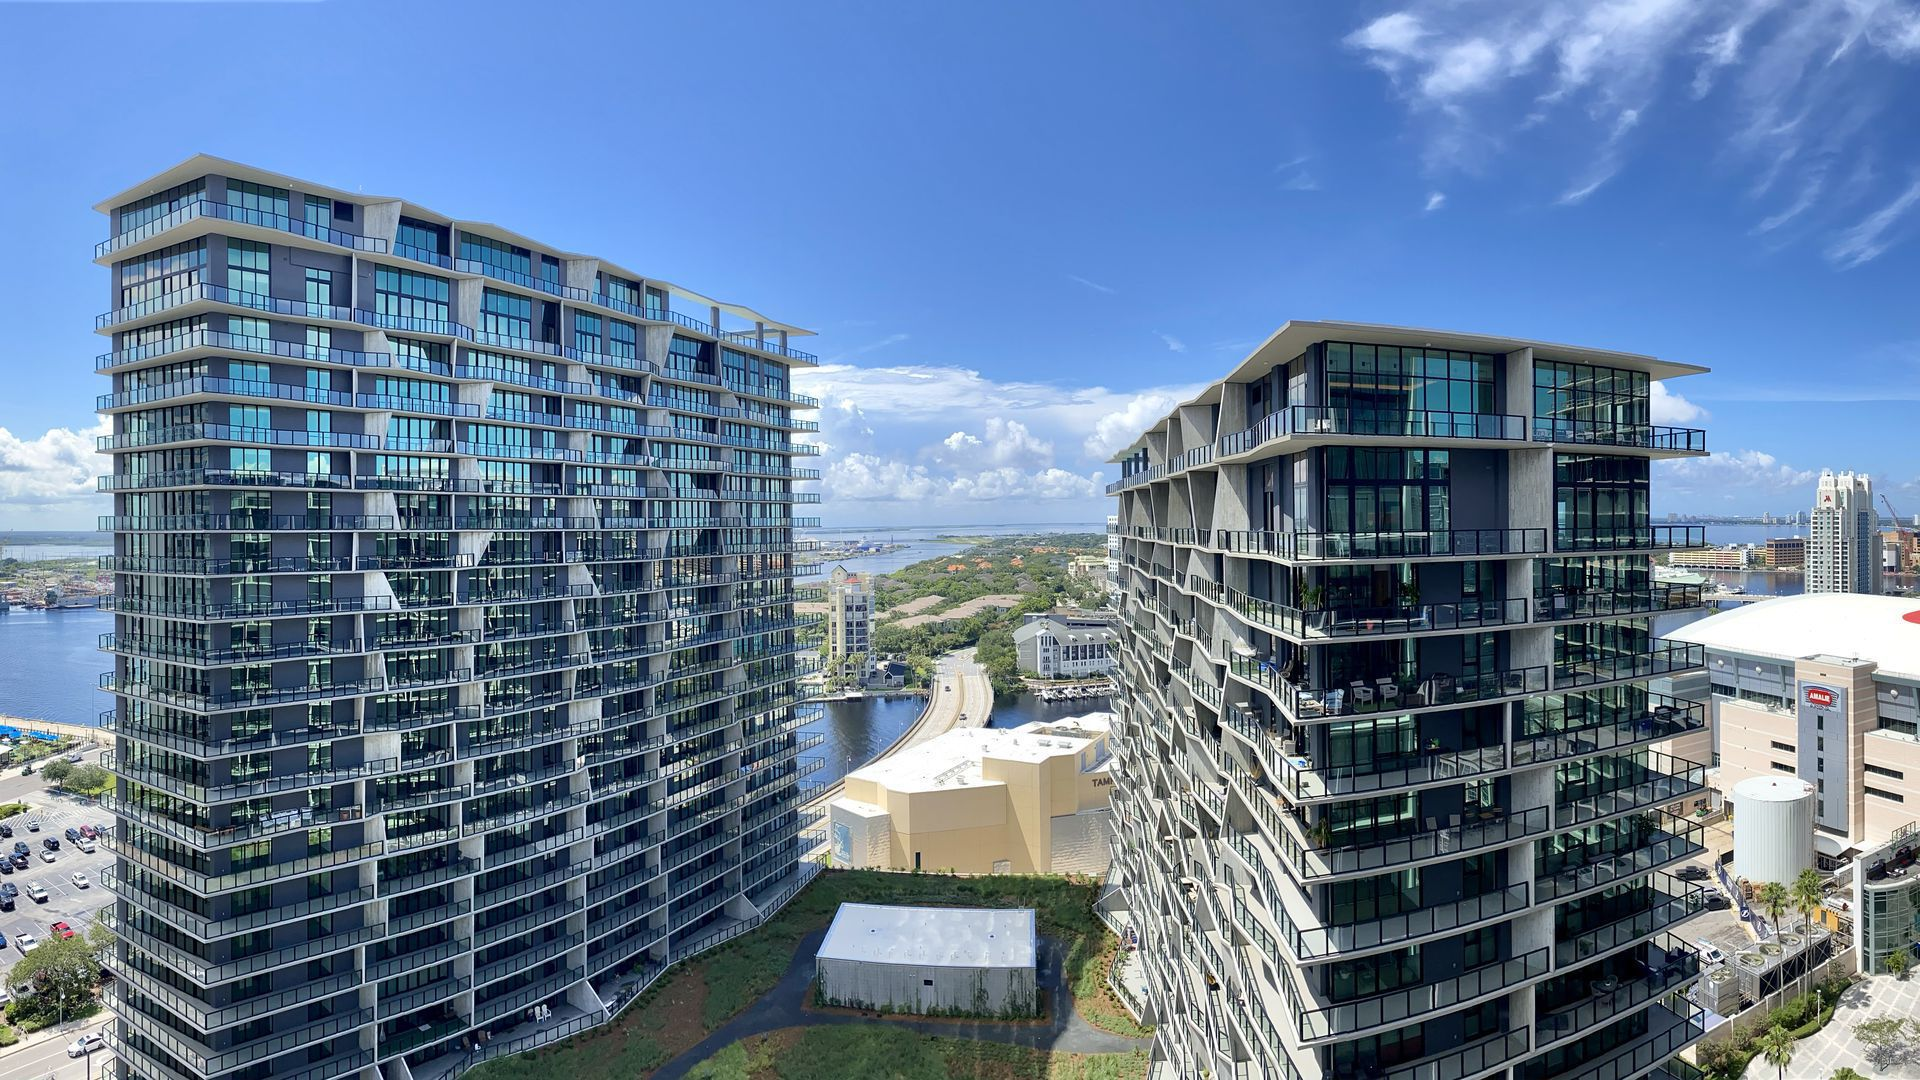 A view from Thousand & One overlooking a rooftop greenhouse and garden in Heron, a residential building.